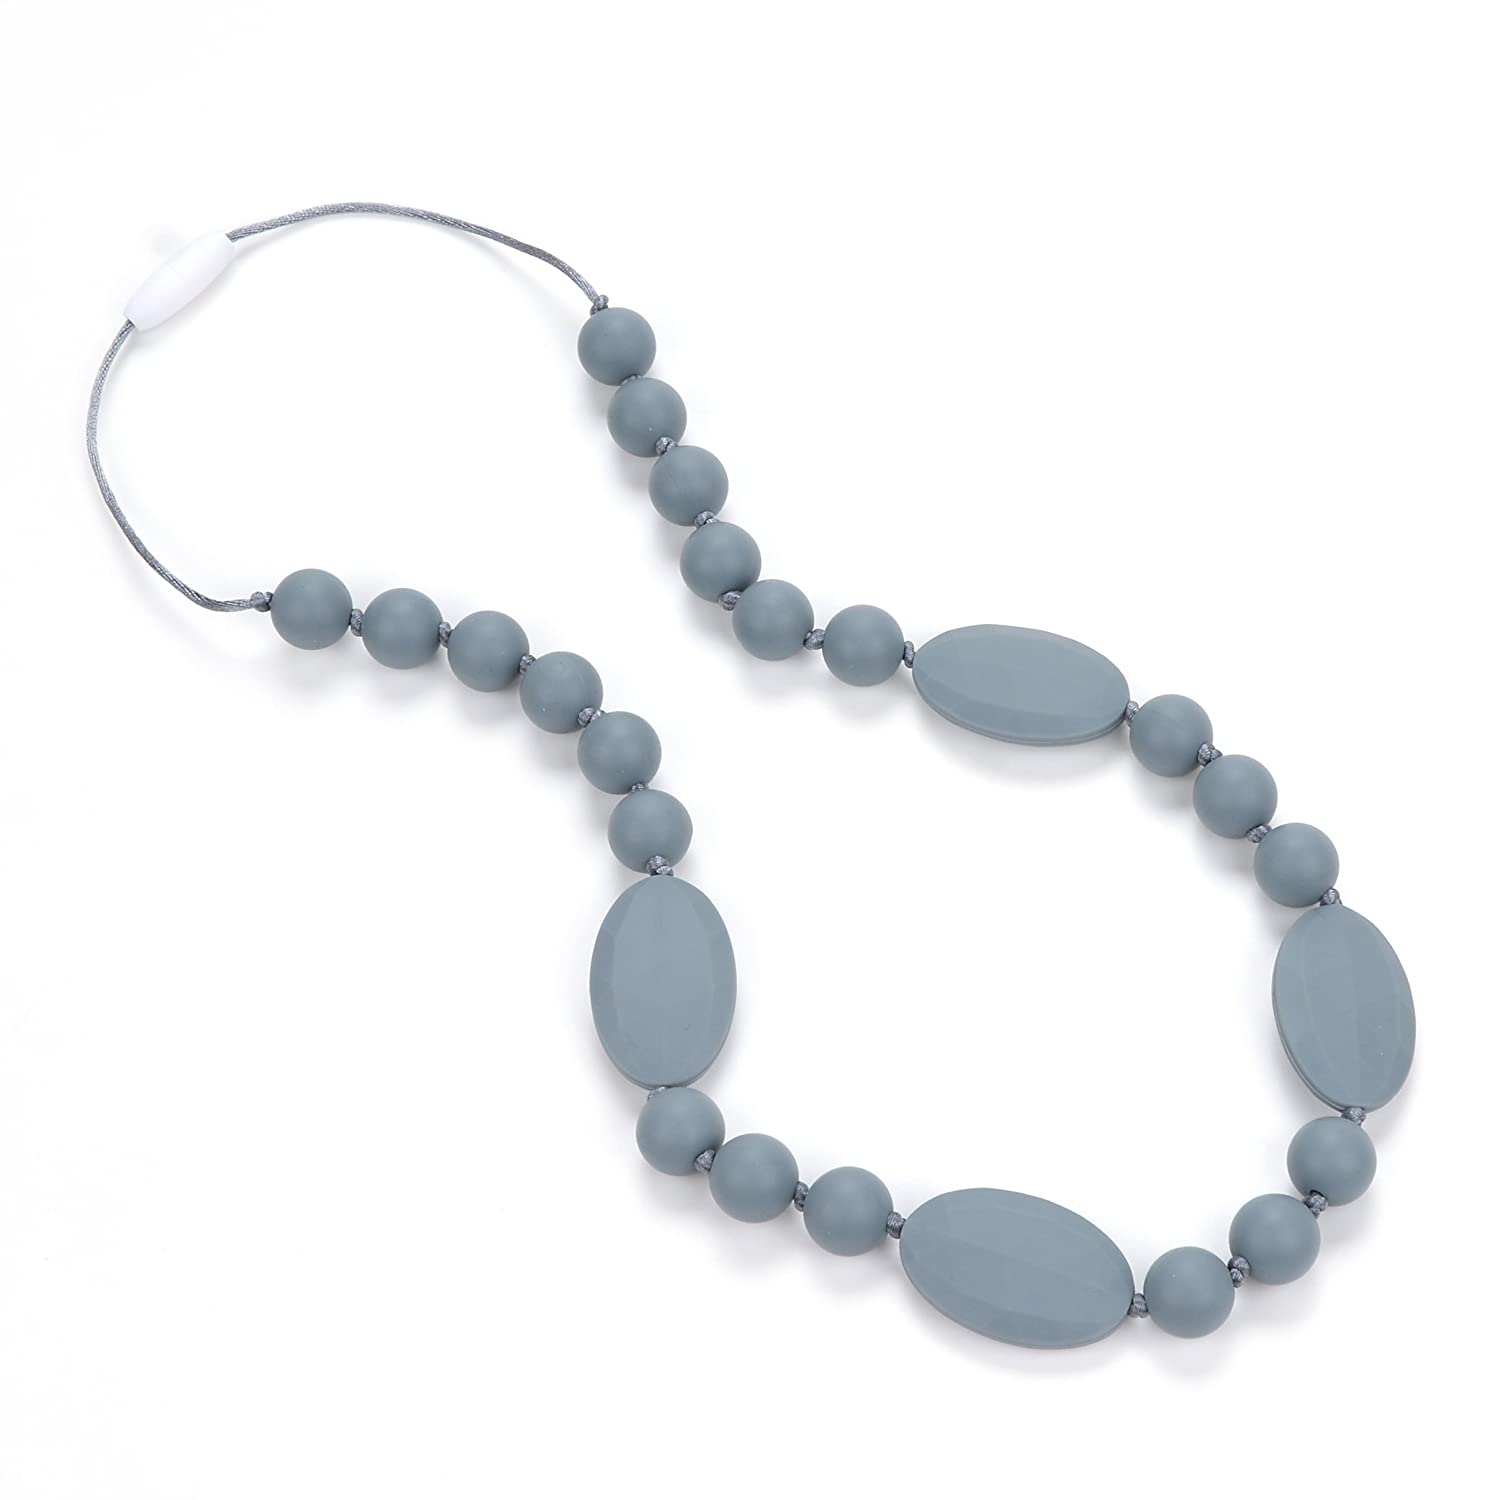 Utopia BPA FREE and FDA Approved Navajo White Consider It Maid Silicone Teething Necklace for Mom to Wear FREE E-BOOK